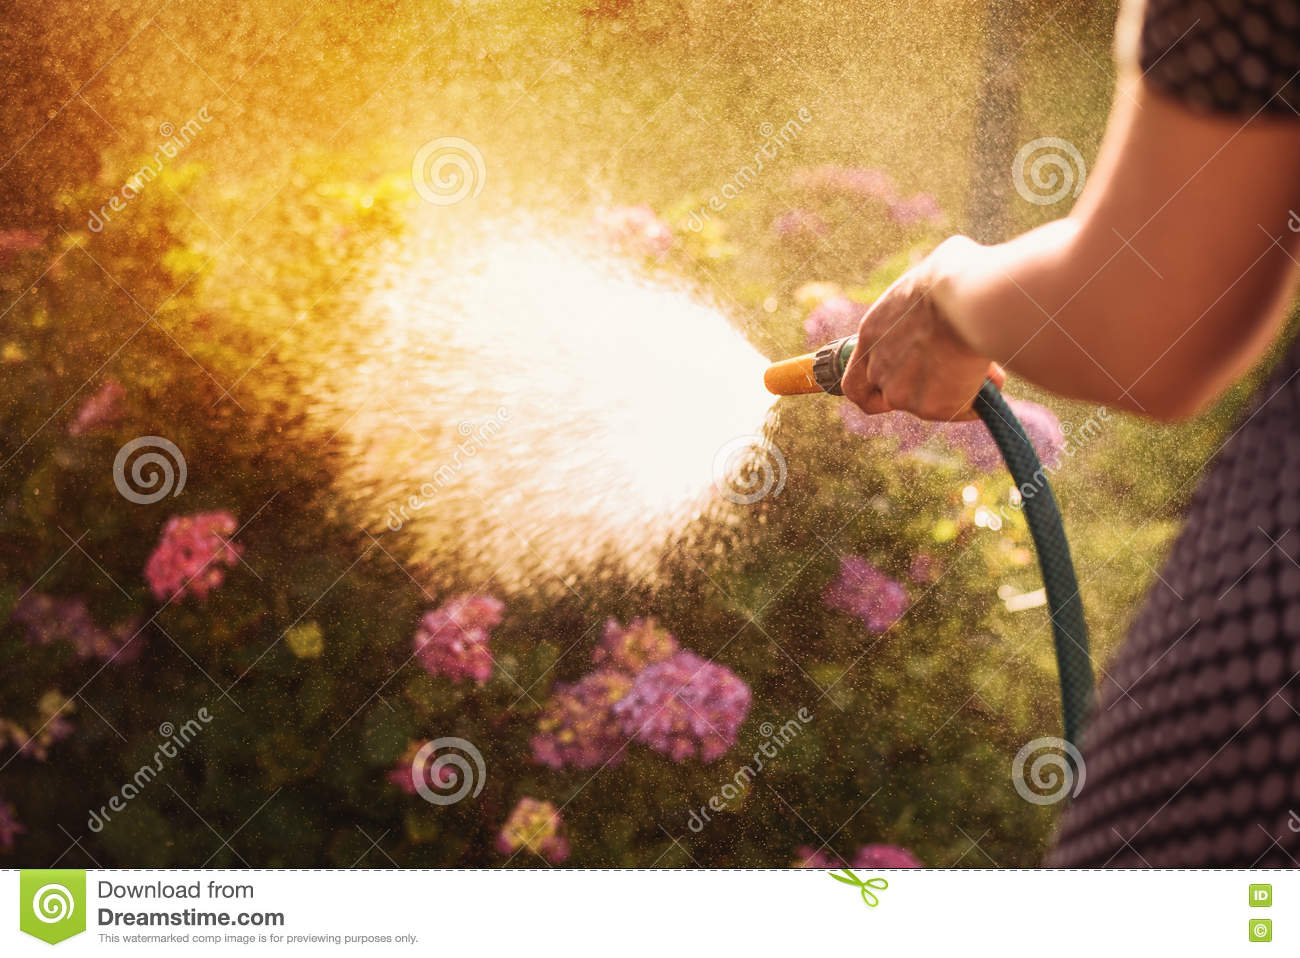 Woman watering a plant in the garden at sunset